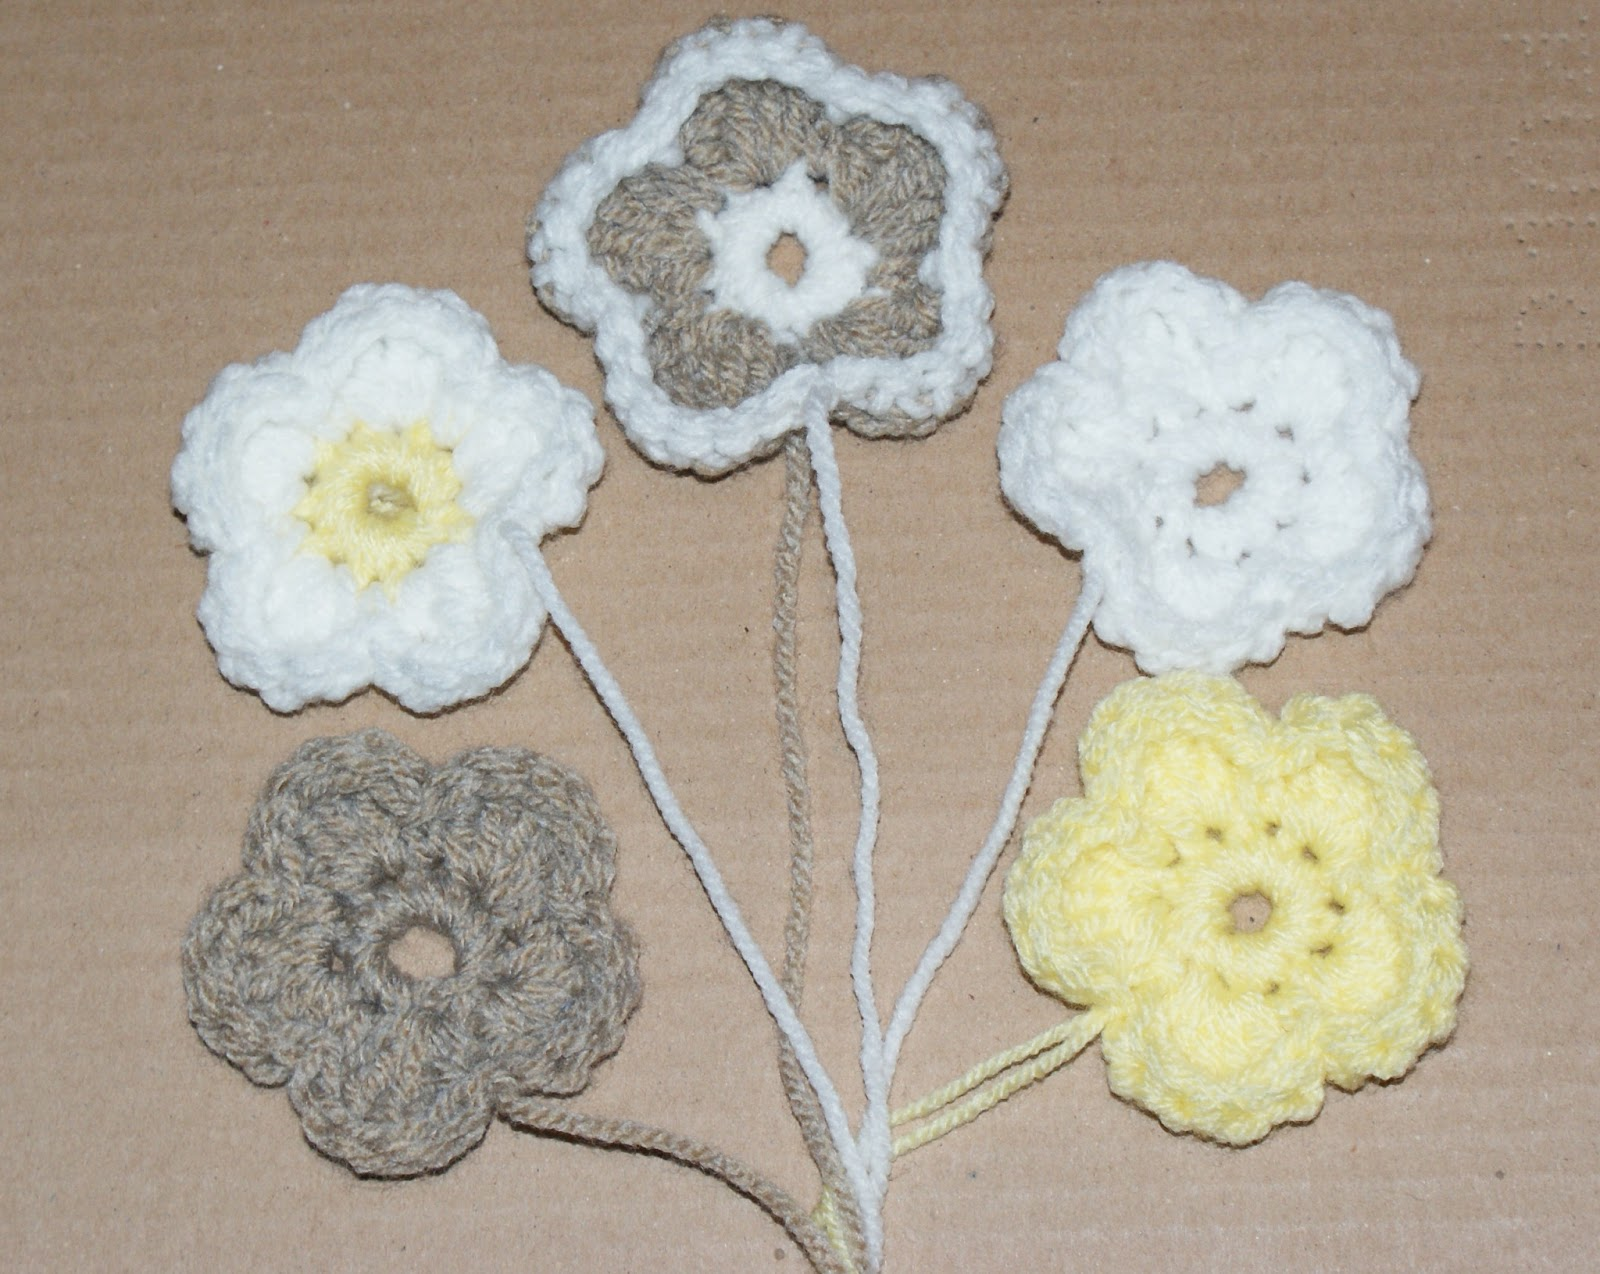 crochet magic for all: Day 22. Chunky five petal curved flower